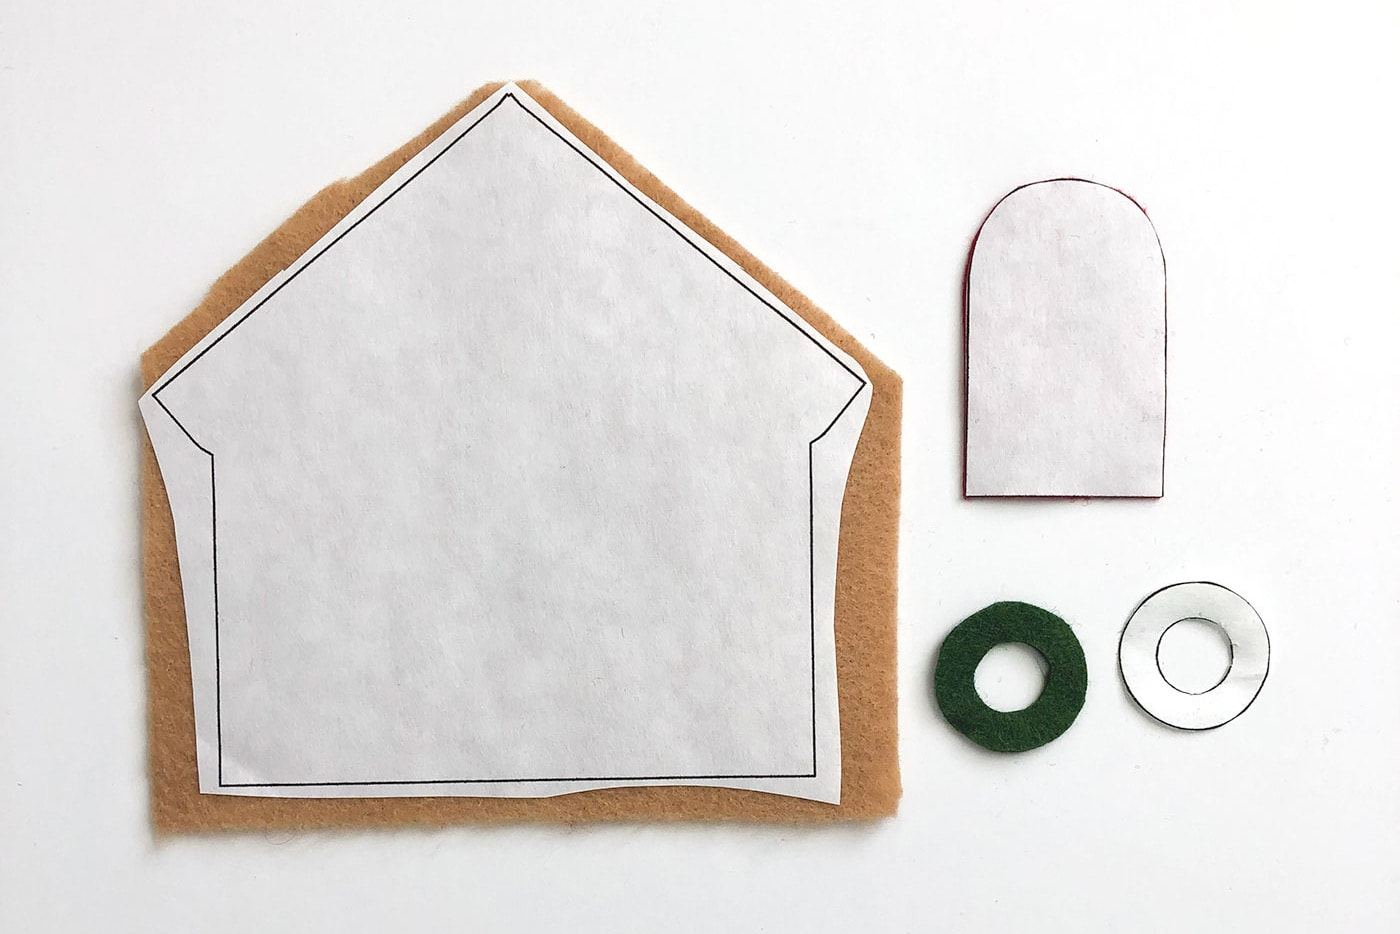 Supplies for Felt Gingerbread House ornaments